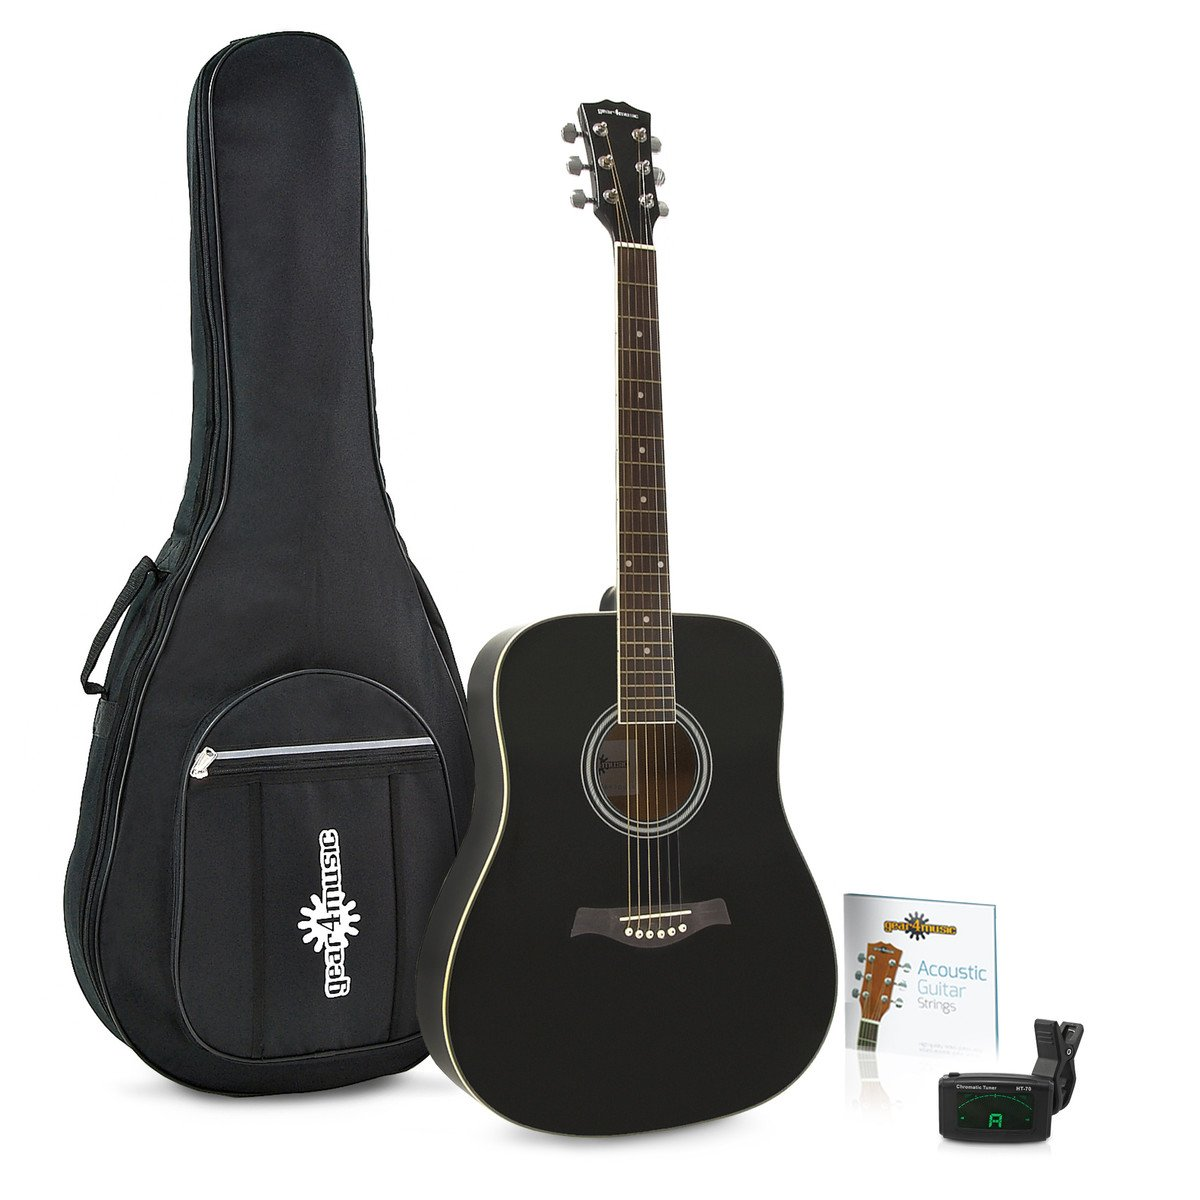 Guitarra Acú stica Dreadnought de Gear4music + Pack de Accesorios Negro